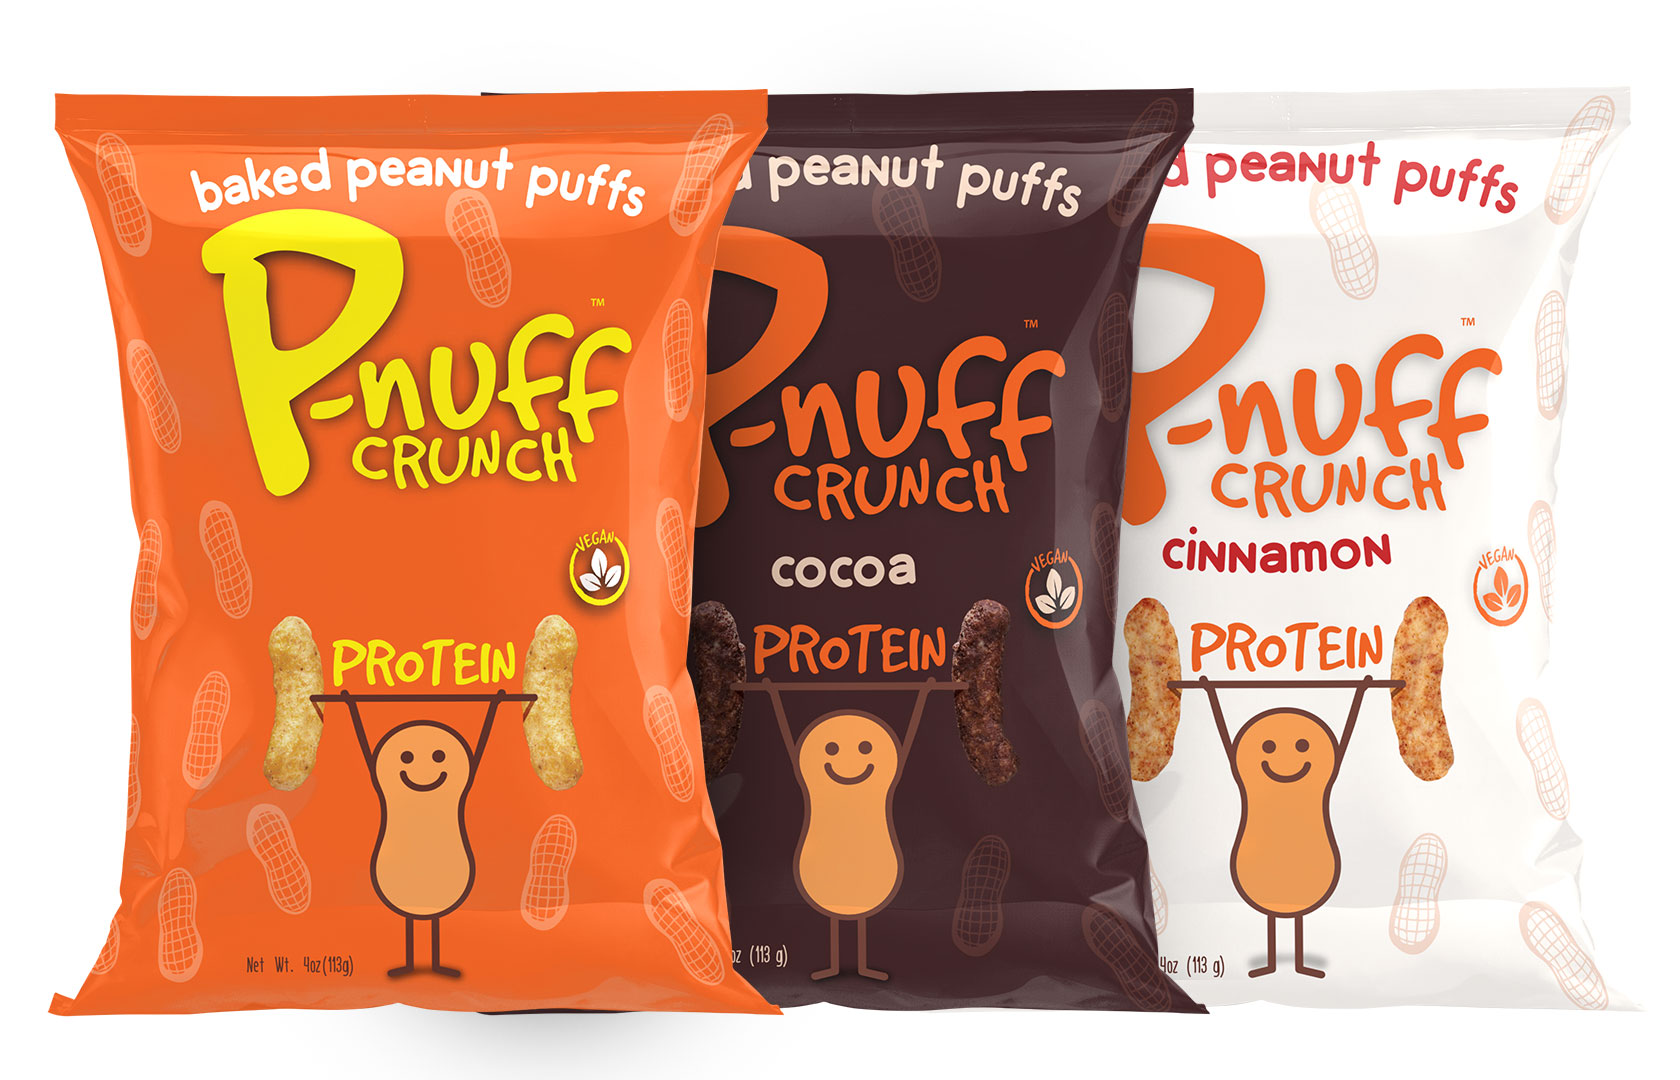 "Baked Peanut Puff Snacks   ""P-nuff Crunch is the only baked puff snack made from protein-filled peanuts, fiber-full navy beans and energy-packed complex carbohydrate rice. P-nuff Crunch keeps active kids and adults on the go, going strong! """